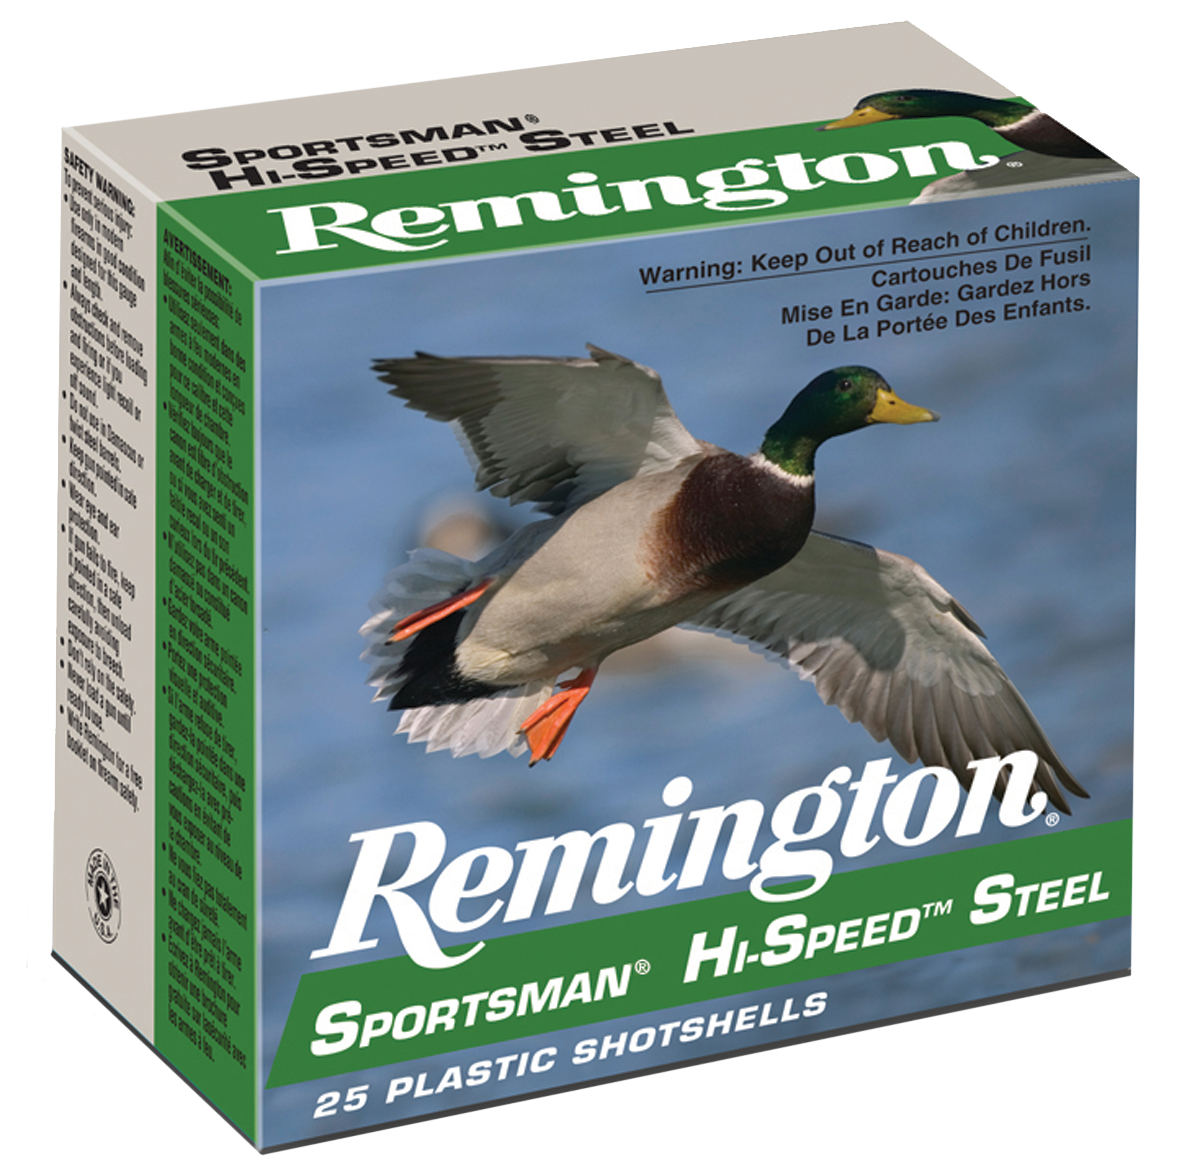 Remington Sportsman Hi-Speed Waterfowl Ammunition 12 Gauge 3